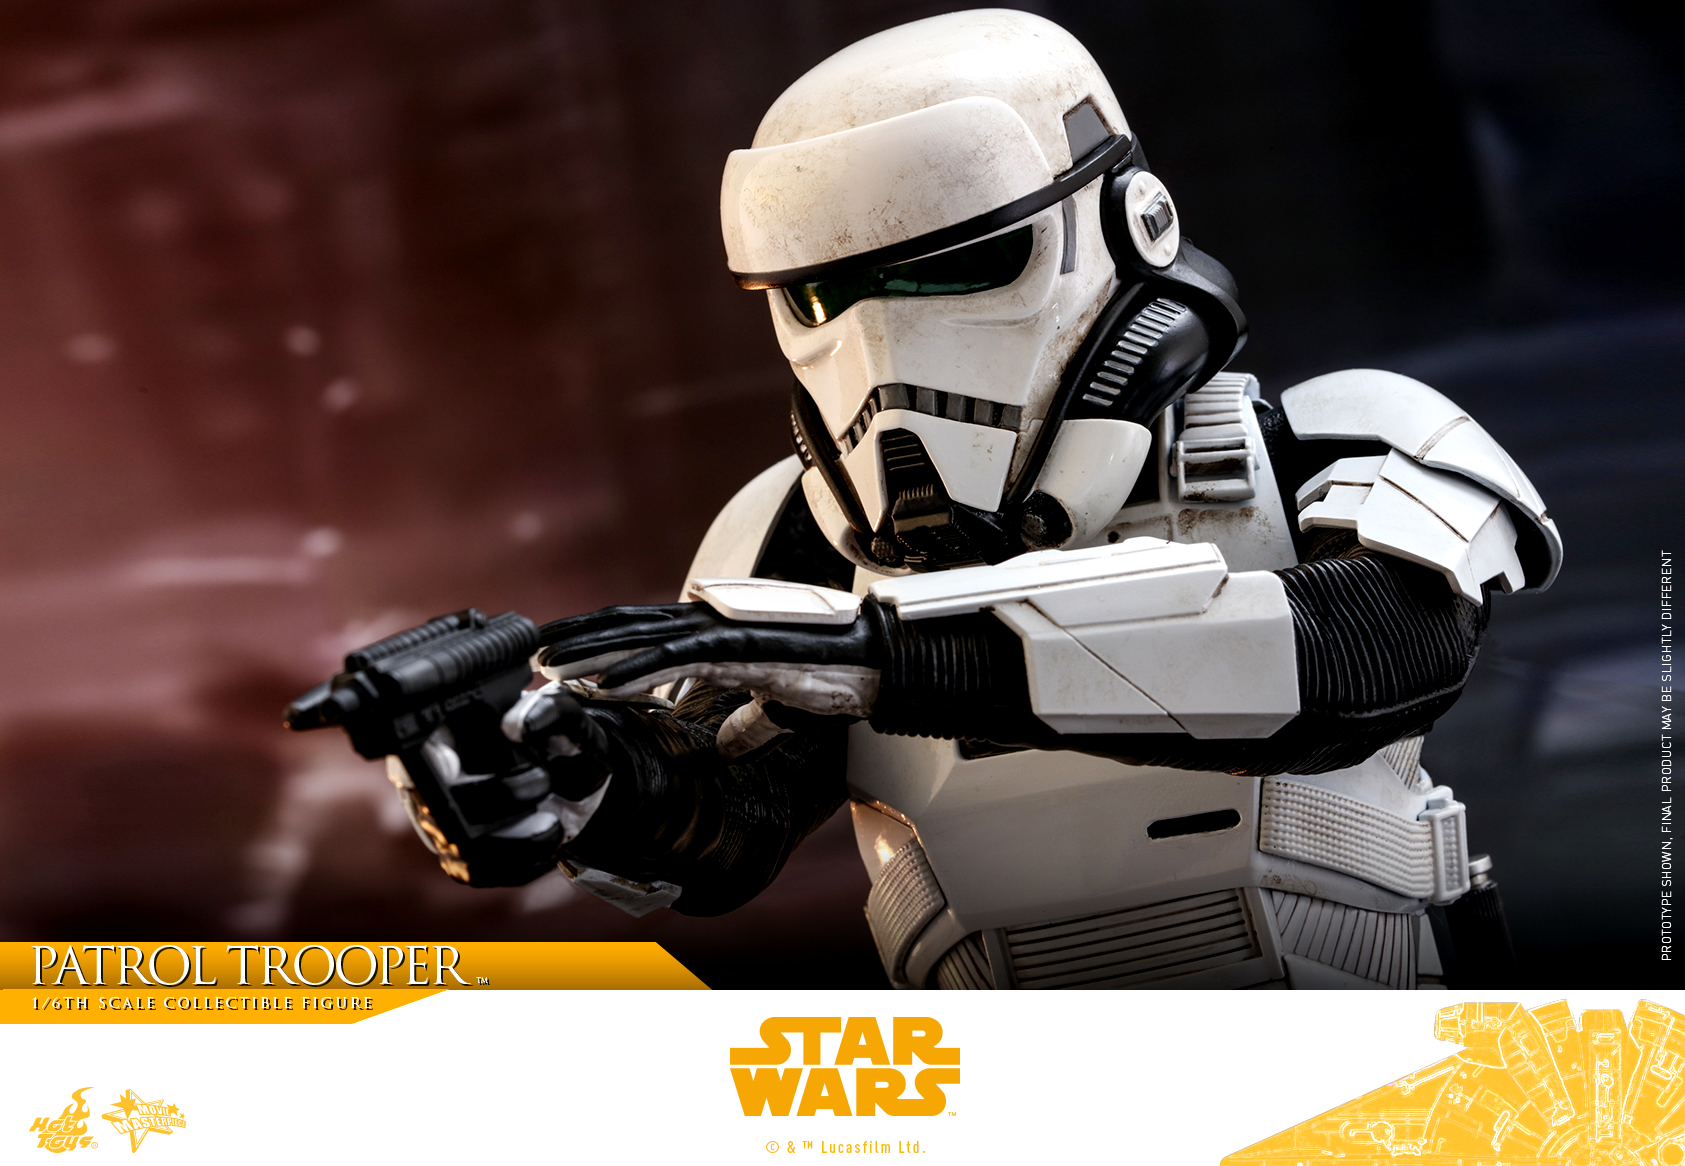 Solo A Star Wars Story S Imperial Patrol Trooper Hot Toys Figure